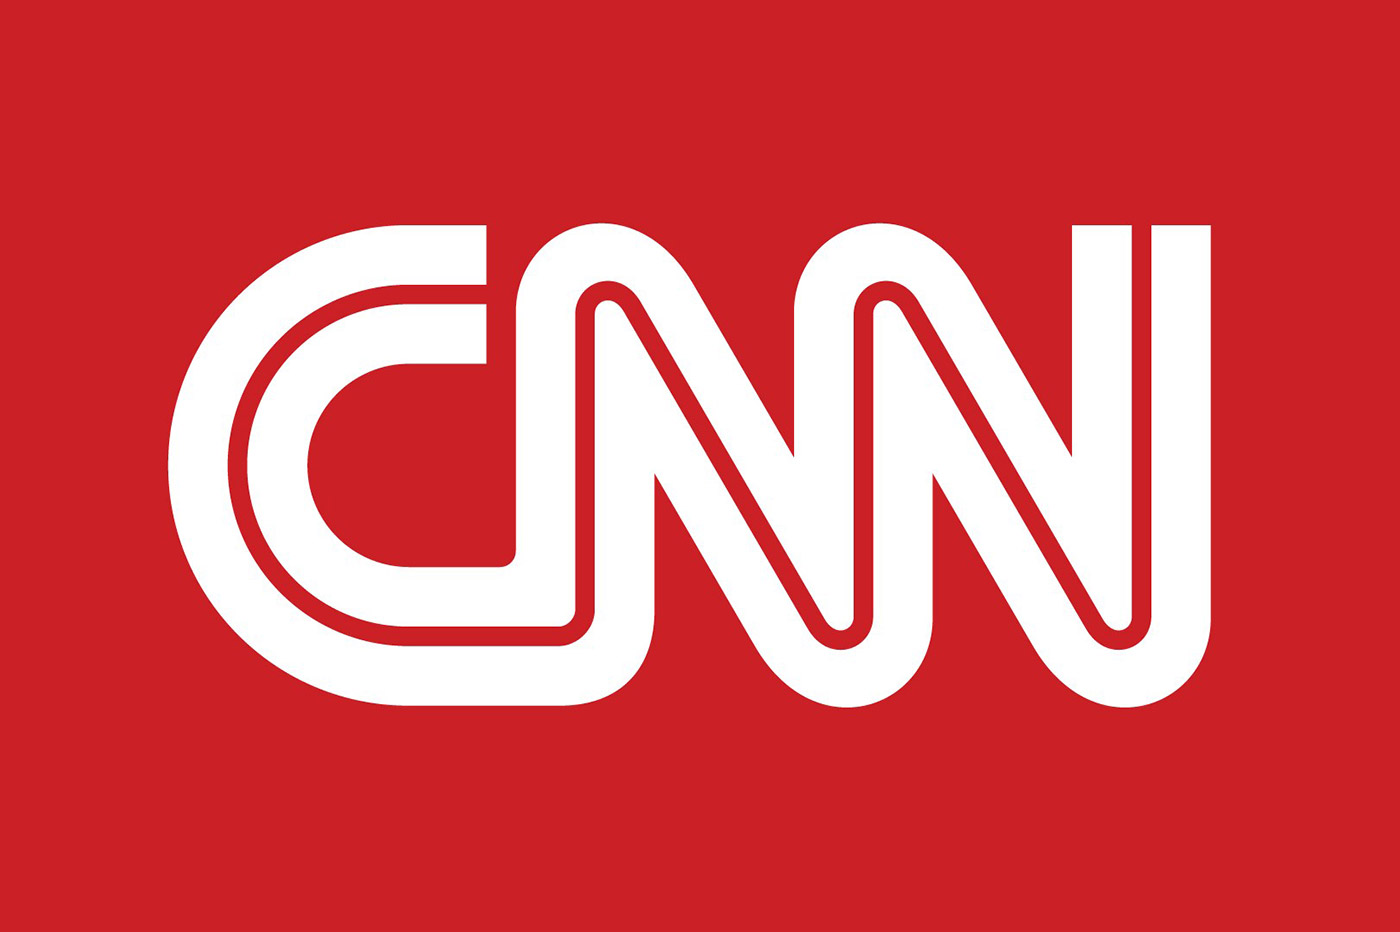 CNN logo white on red